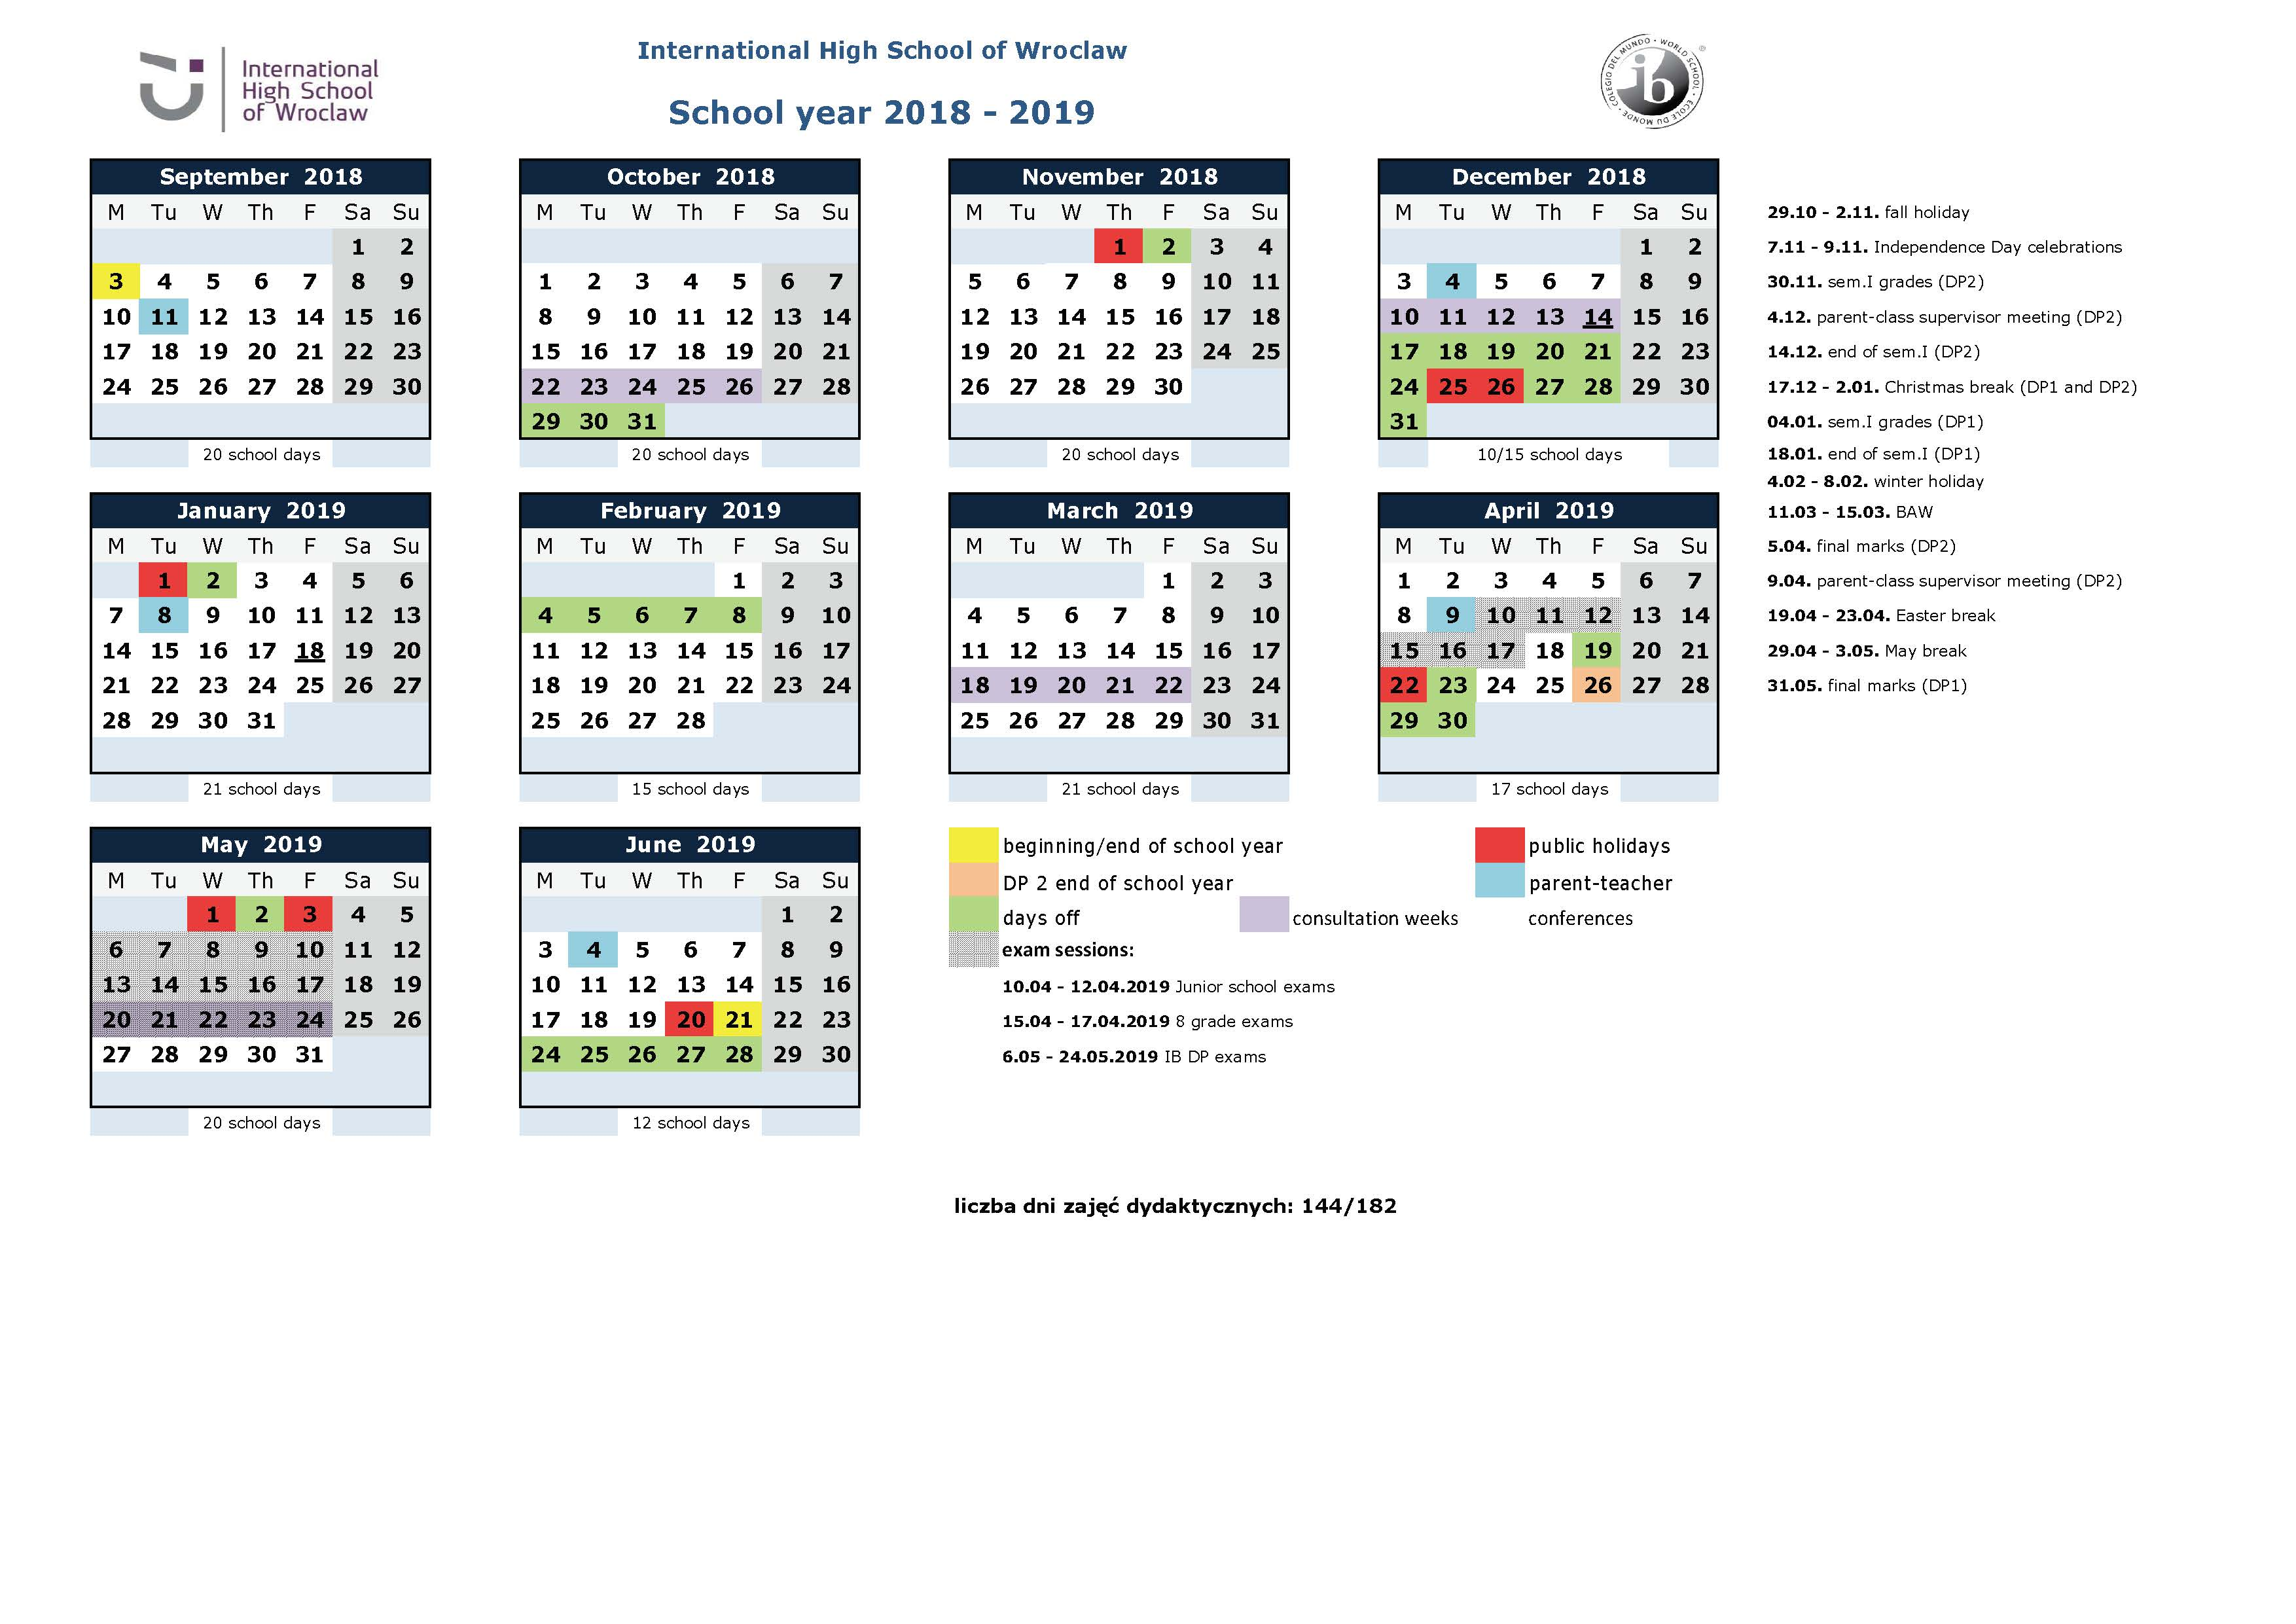 School year calendar 2018-19 IHSW - for students and parents